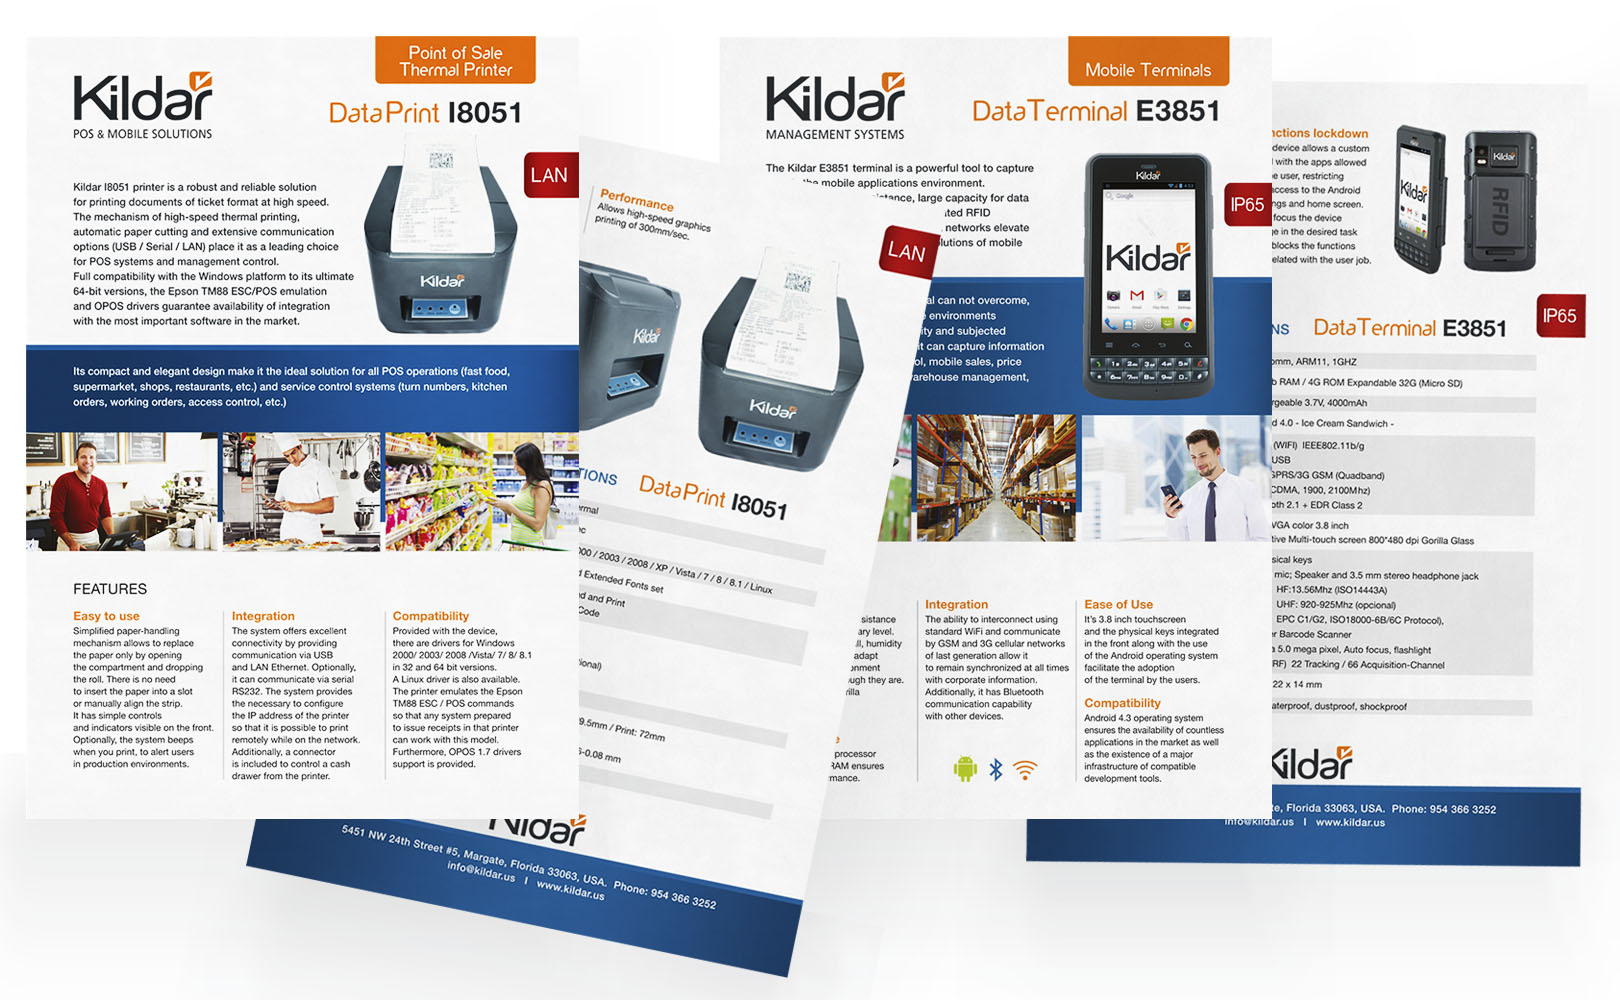 Kildar, Logo and Web design. Collateral material.